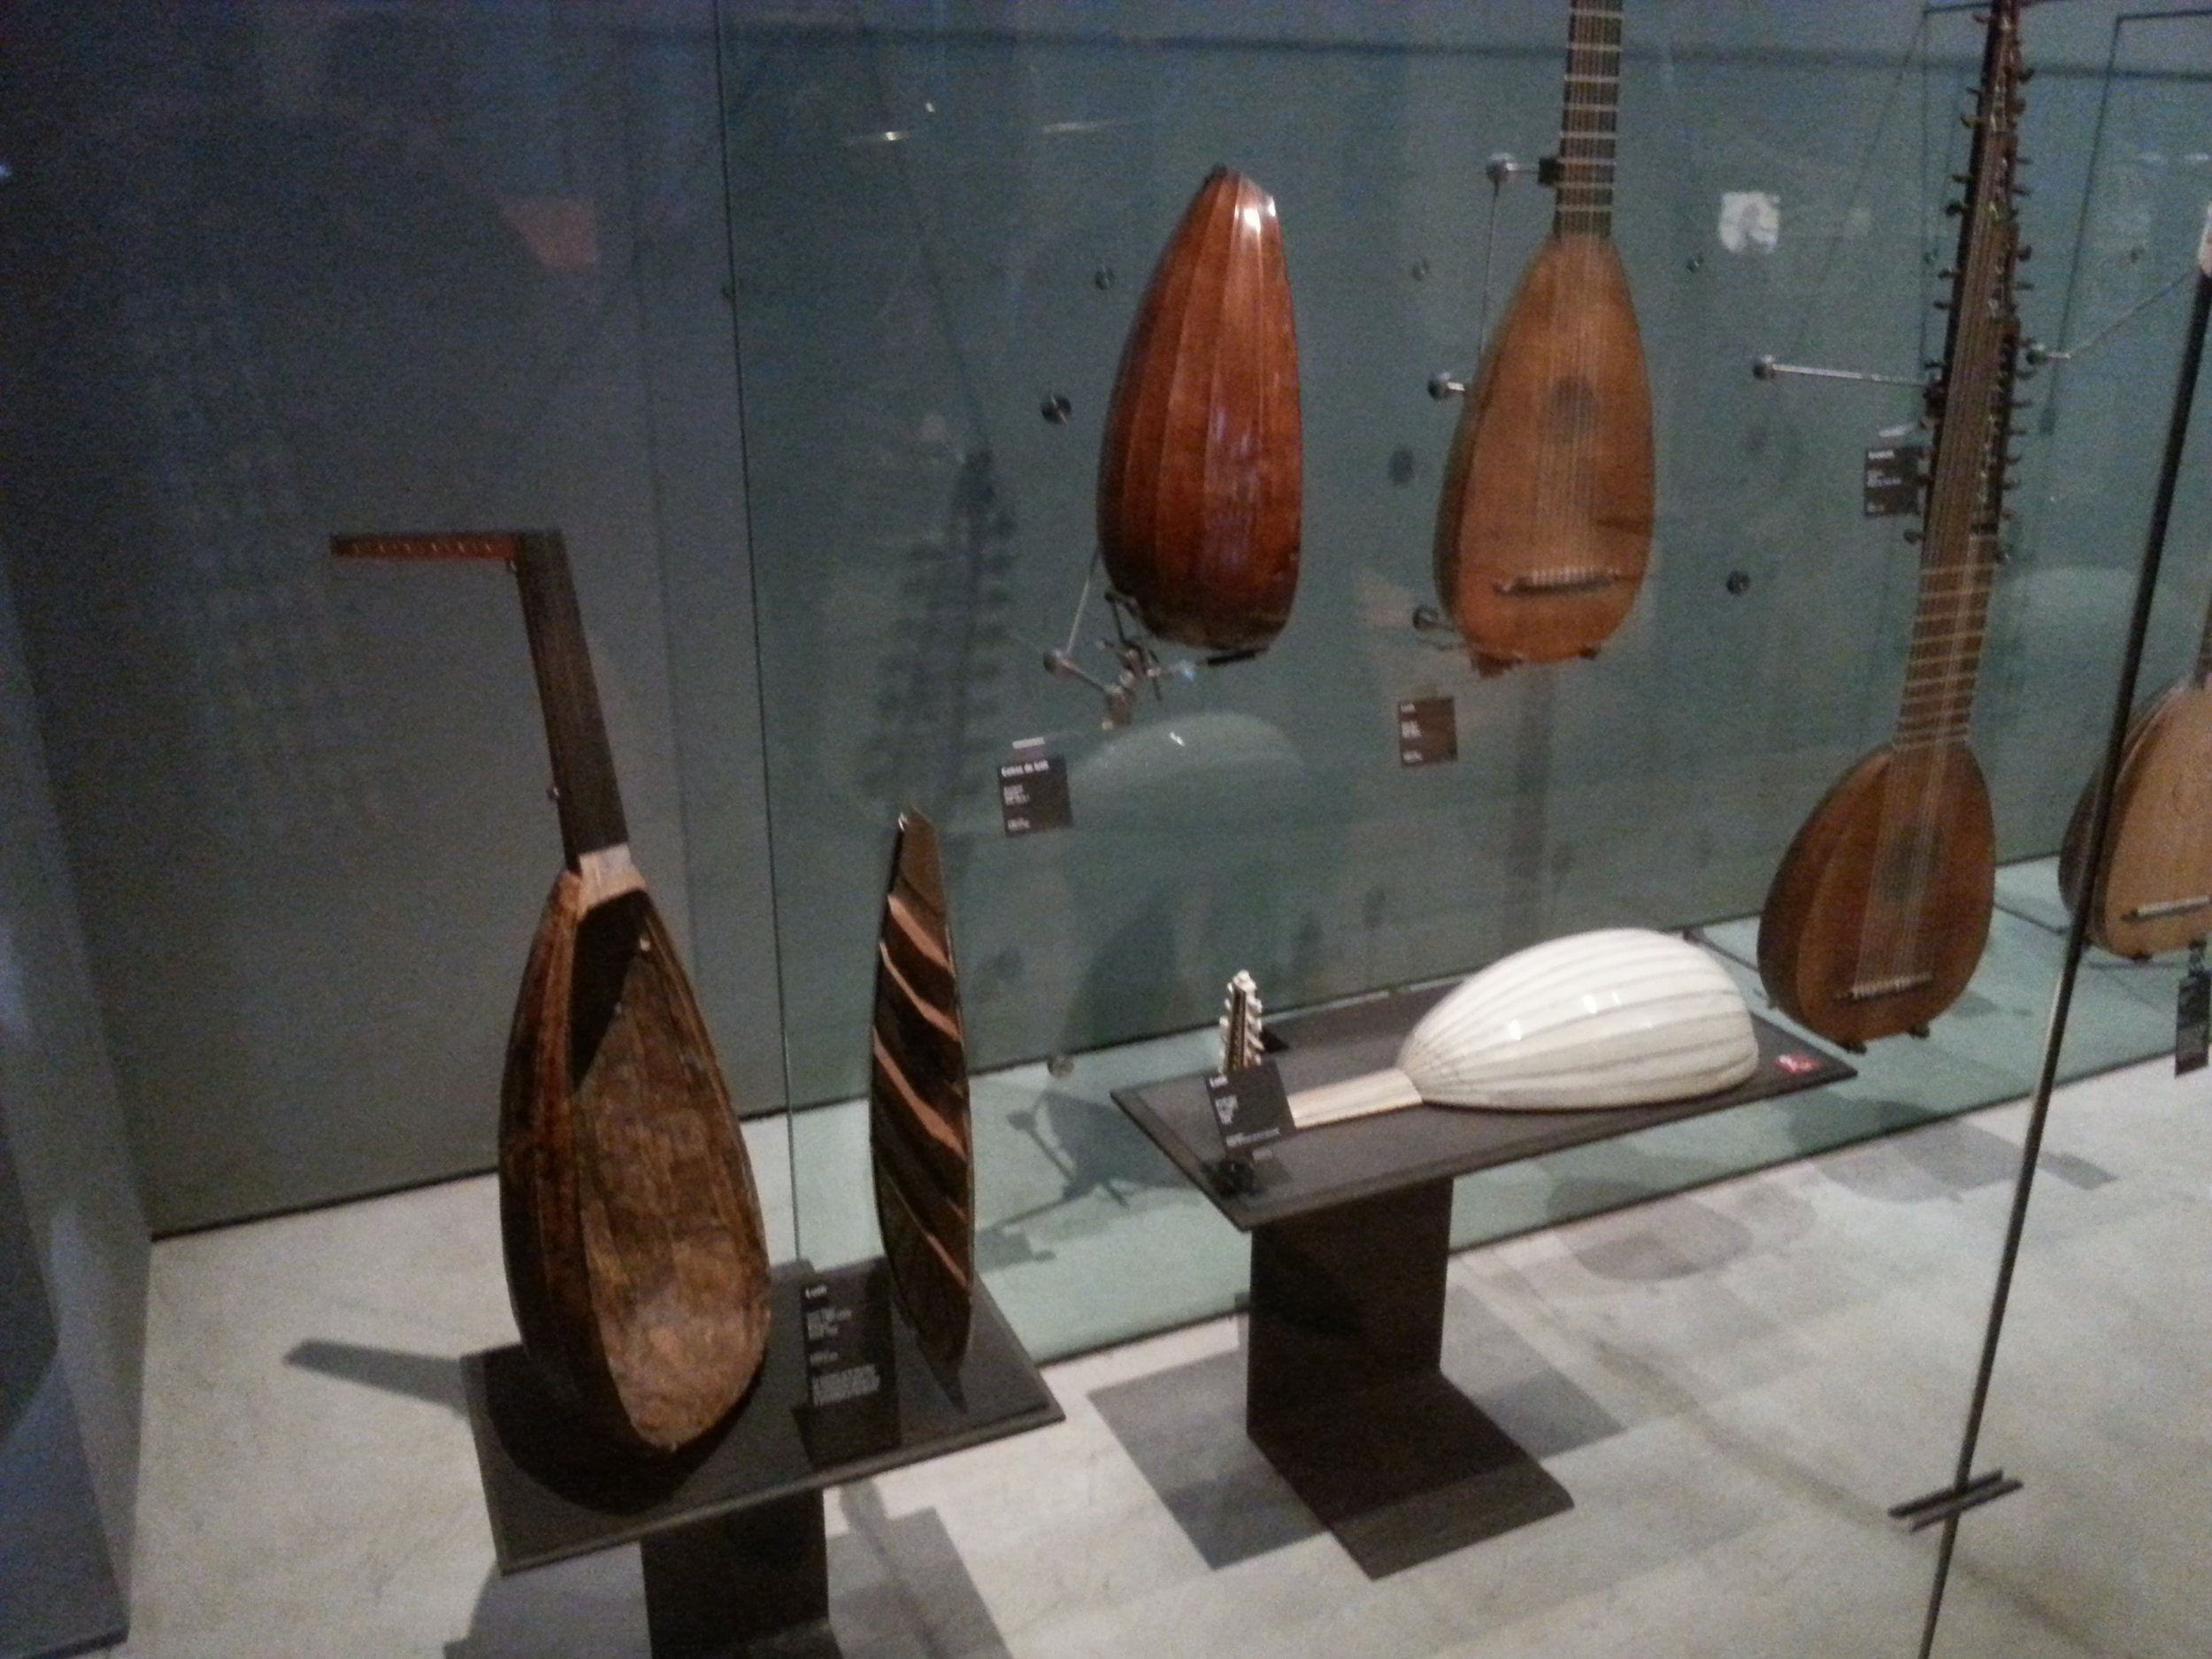 Many intresting lutes! The white one has a body made of Ivory!